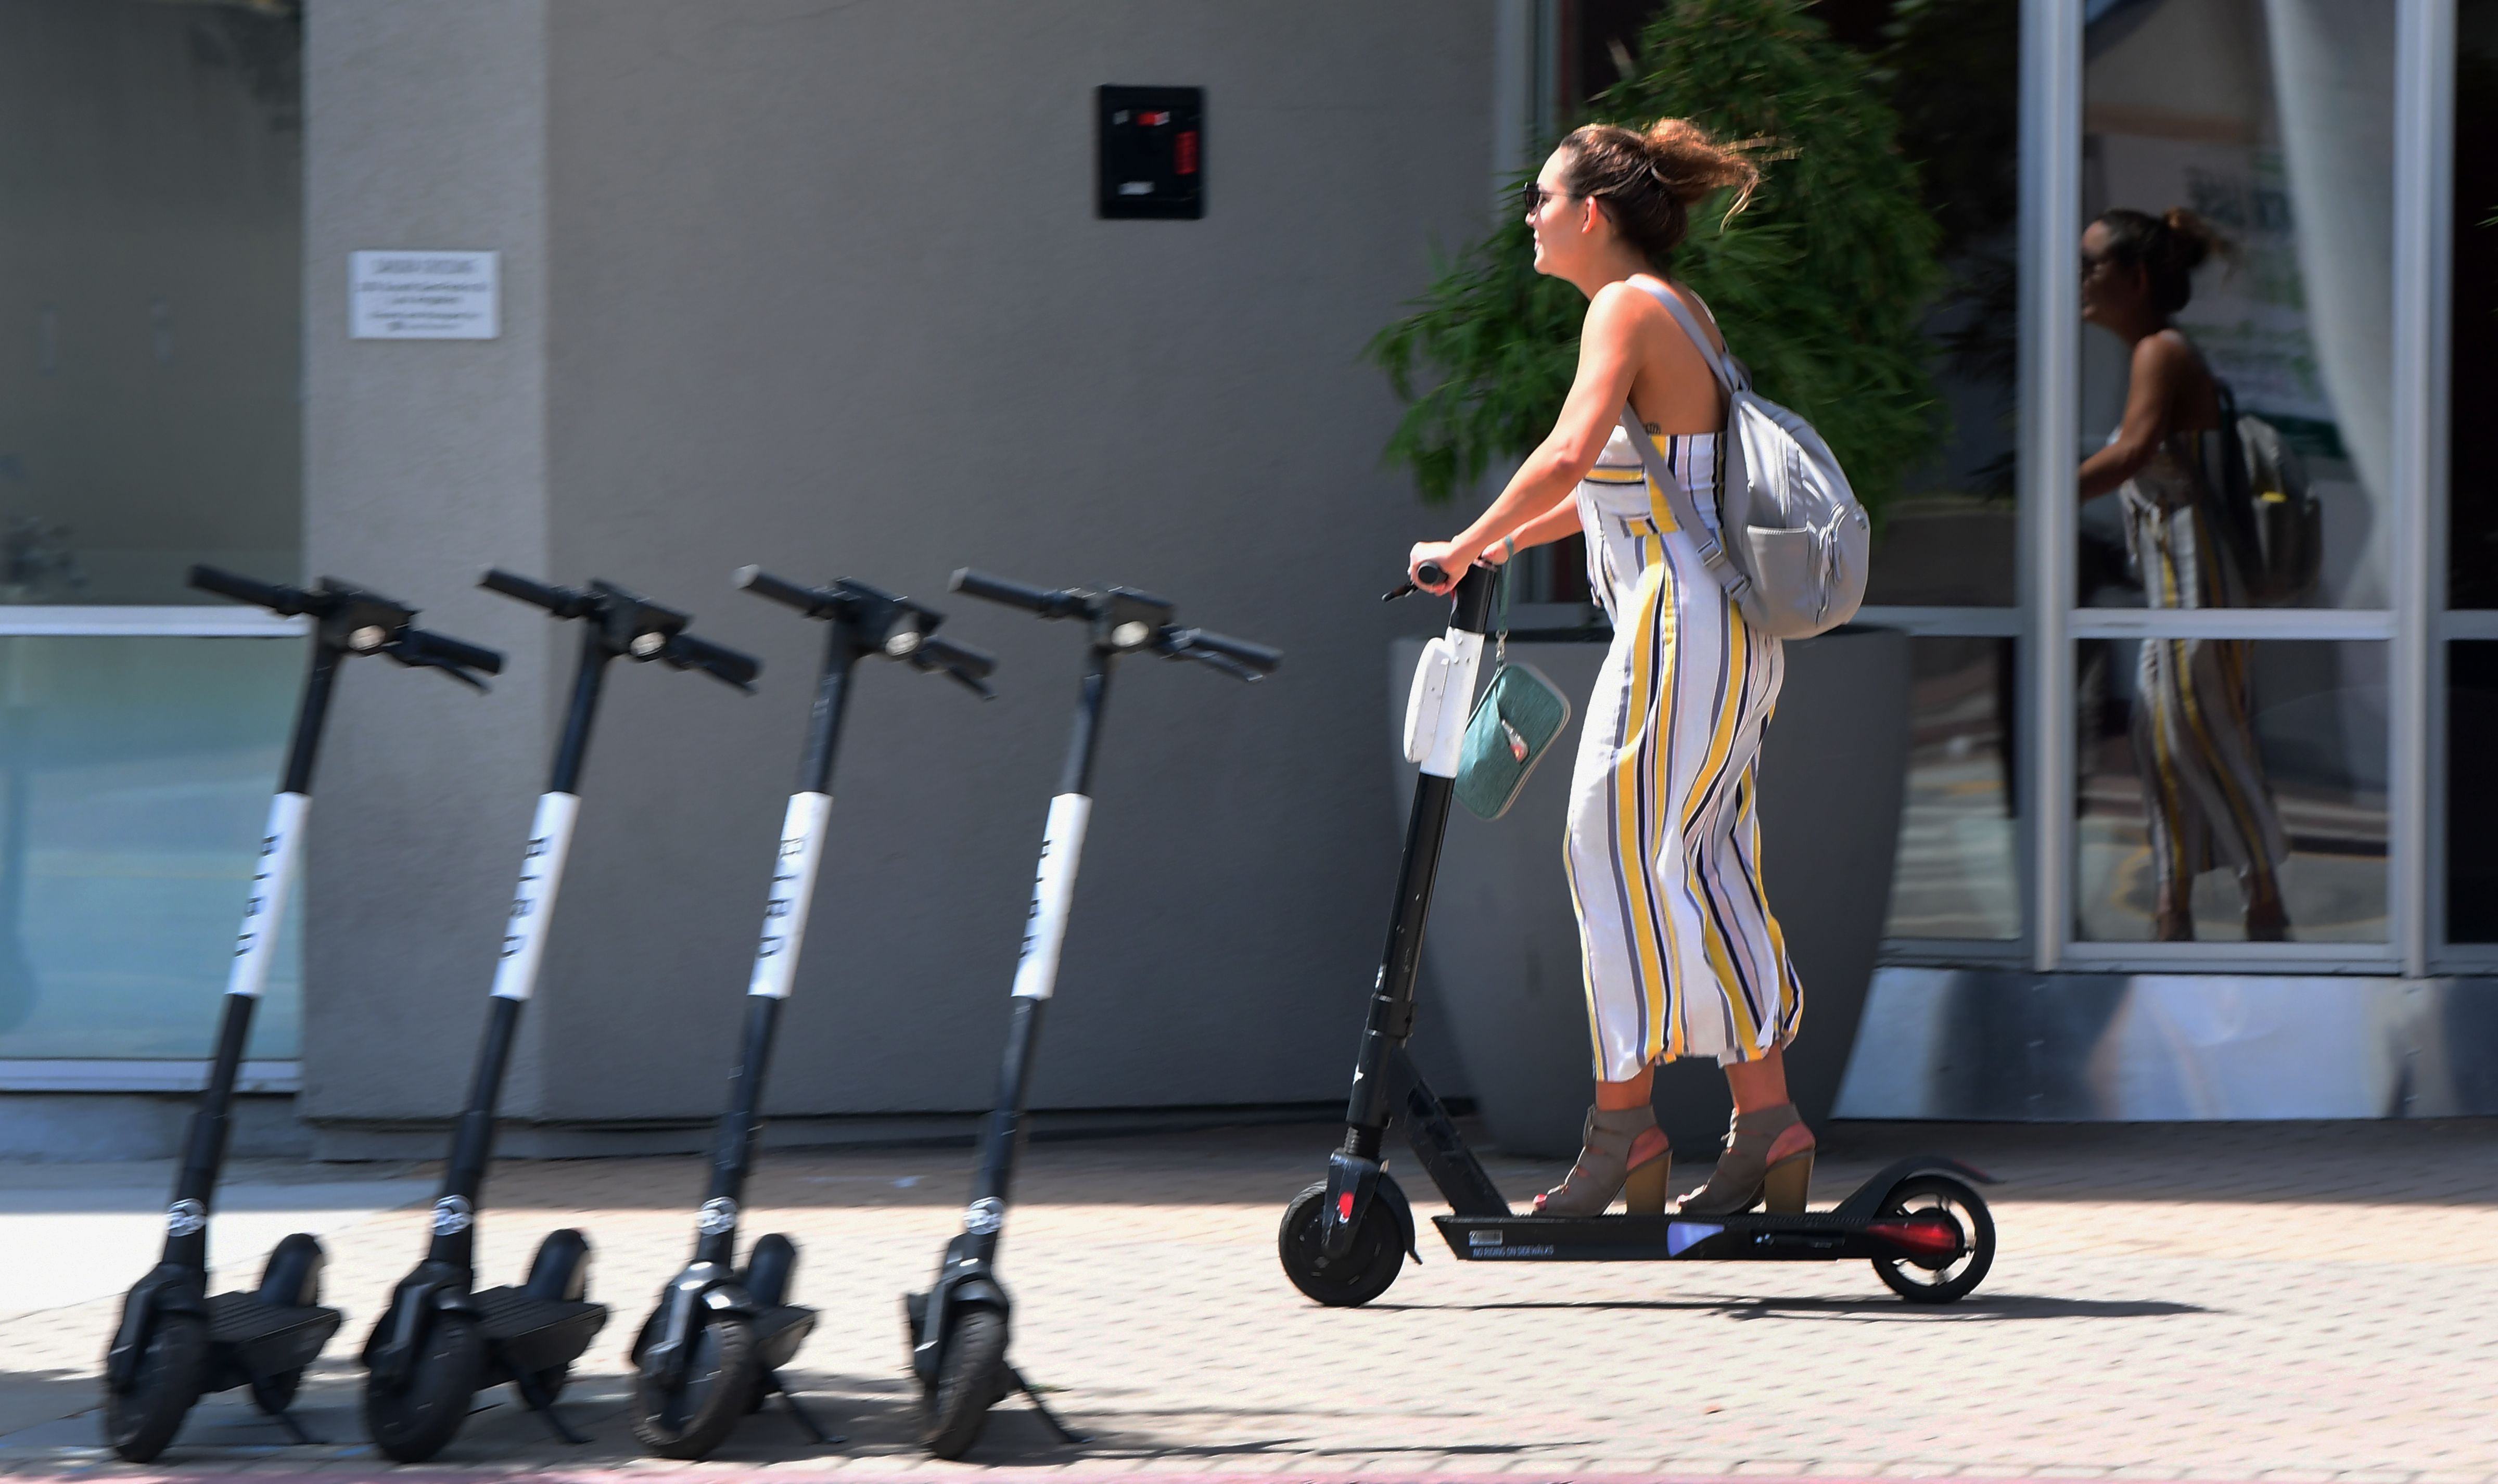 US-TRANSPORT-SCOOTER